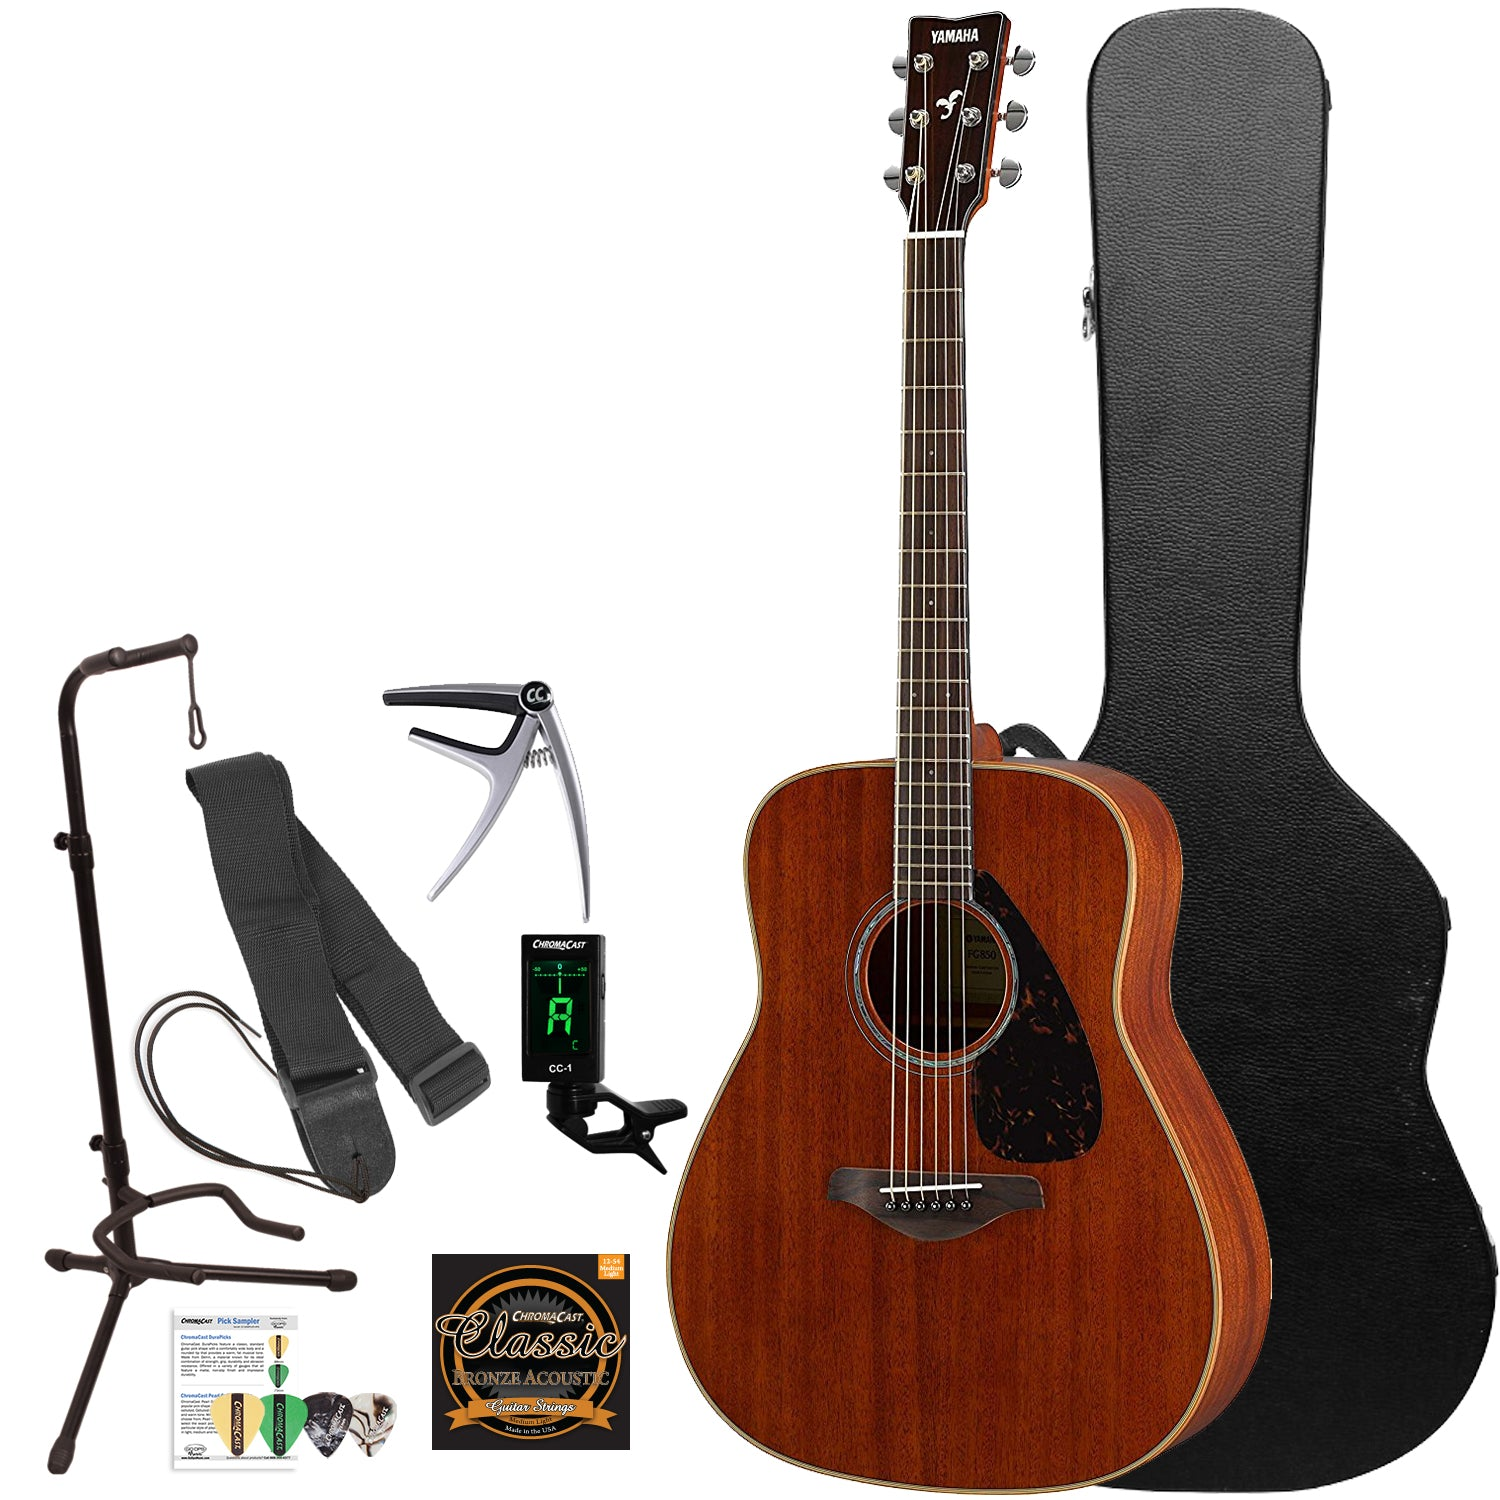 yamaha fg850 solid mahogany top acoustic guitar with accessories godpsmusic. Black Bedroom Furniture Sets. Home Design Ideas